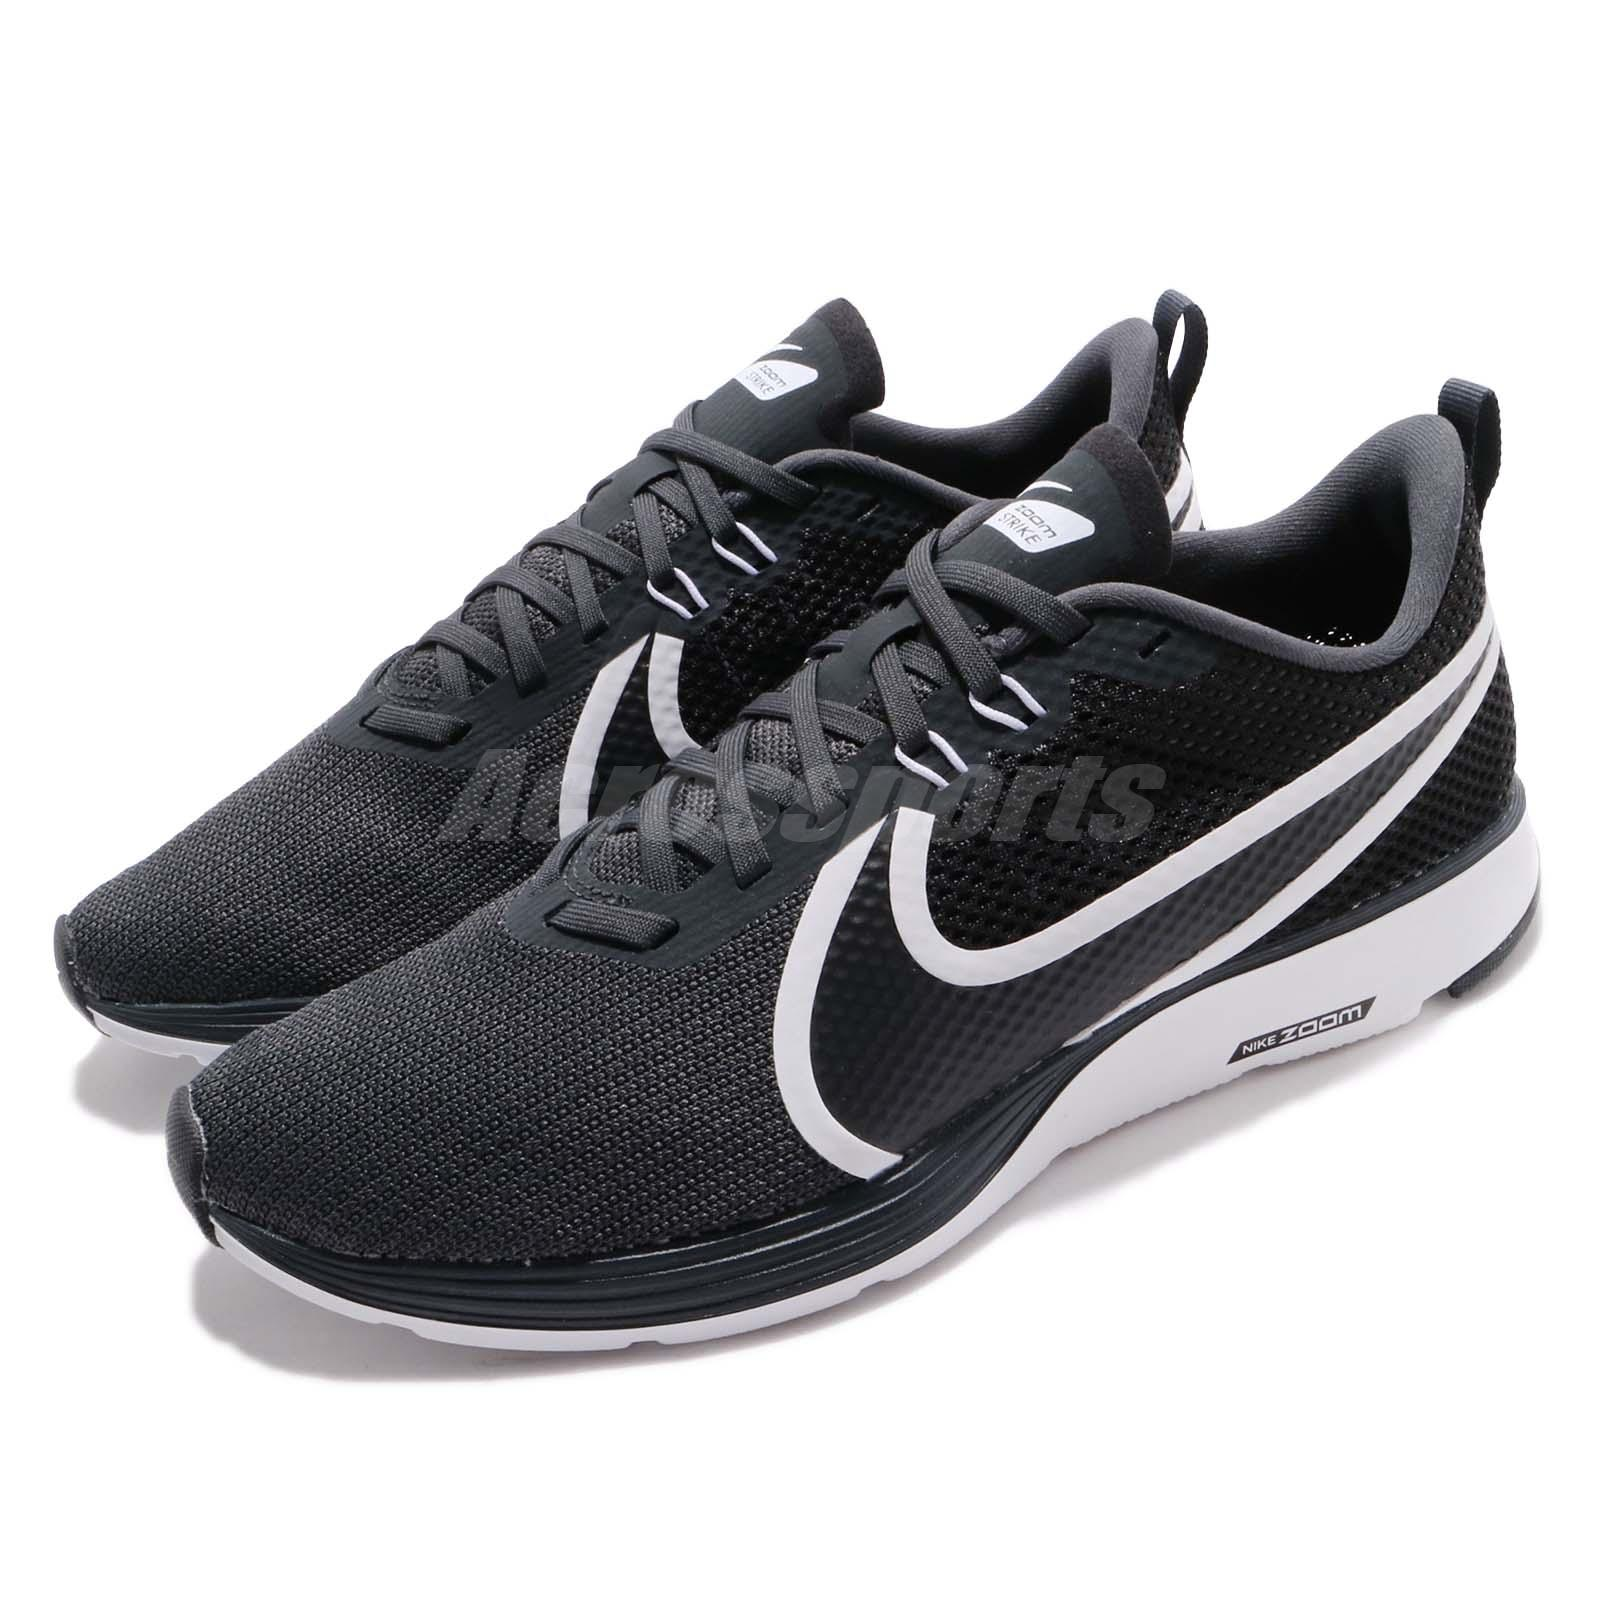 2fcd23b3eb6c5 Details about Nike Zoom Strike 2 Black White Men Running Training Shoes  Sneakers AO1912-001